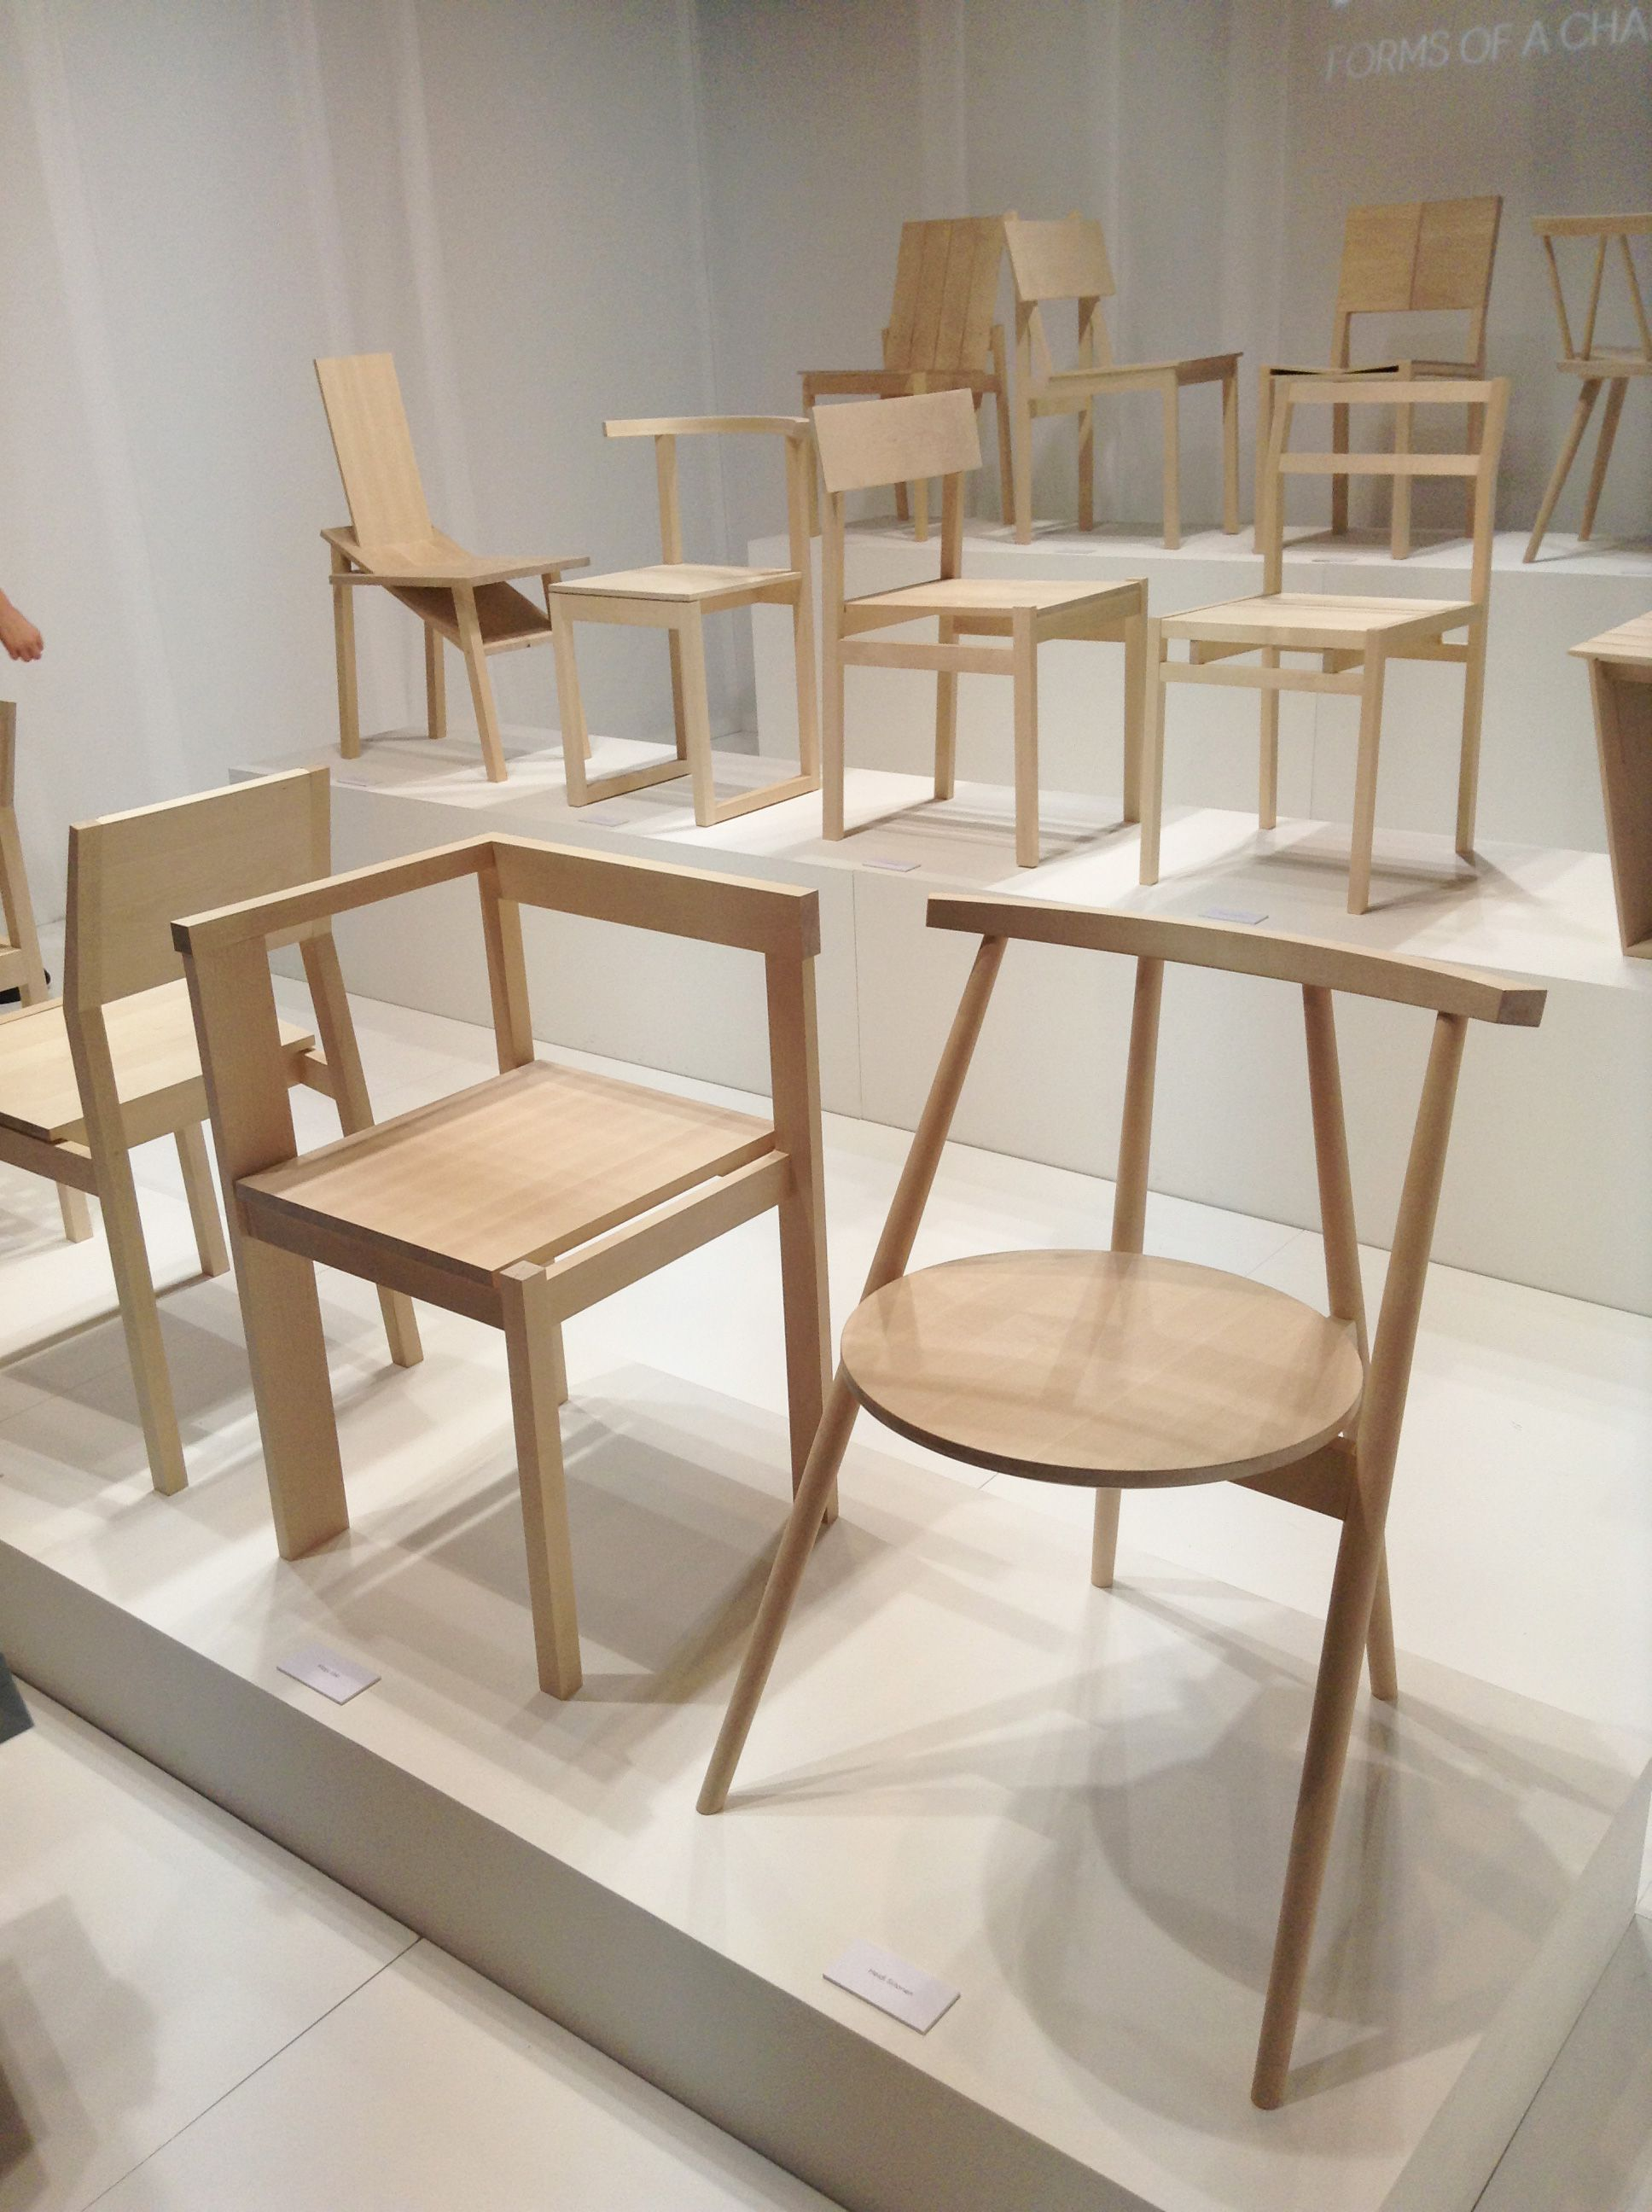 Stockholm Furniture Fair 2013   Chairs. Karimoku New Standard by Isolation Unit and others   Japanese